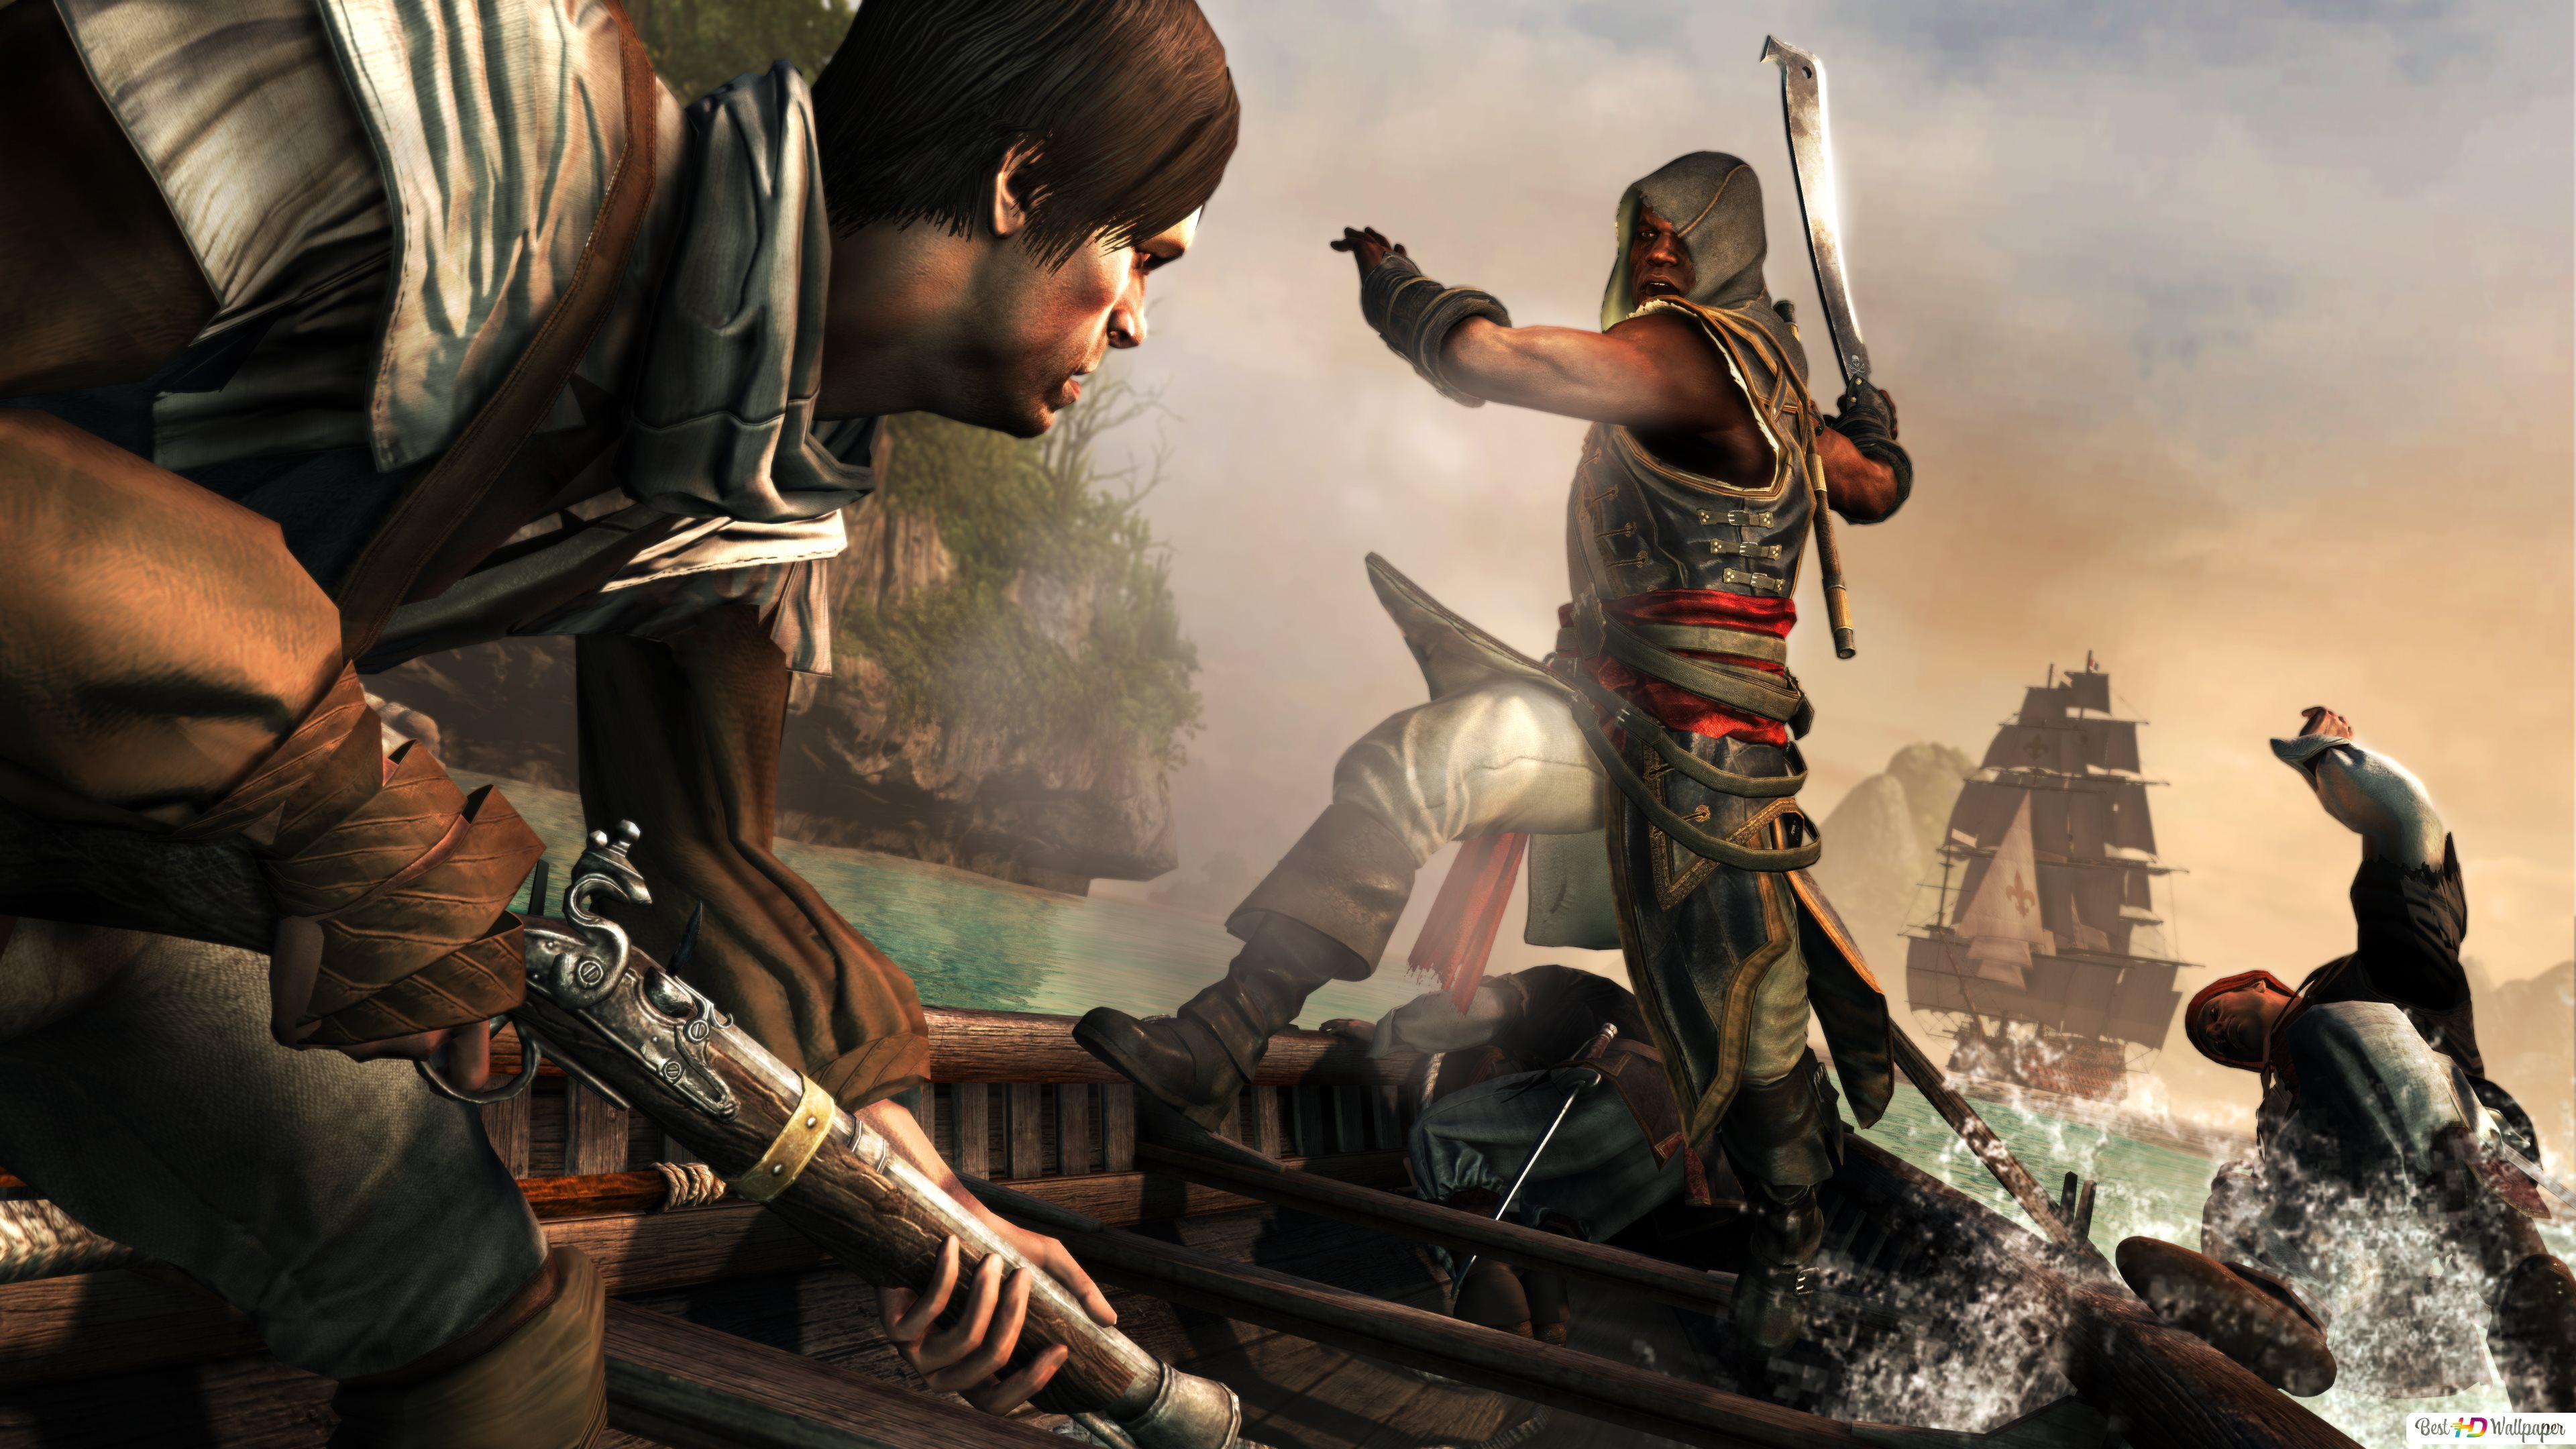 Assassin S Creed Iv Black Flag Hd Wallpaper Download